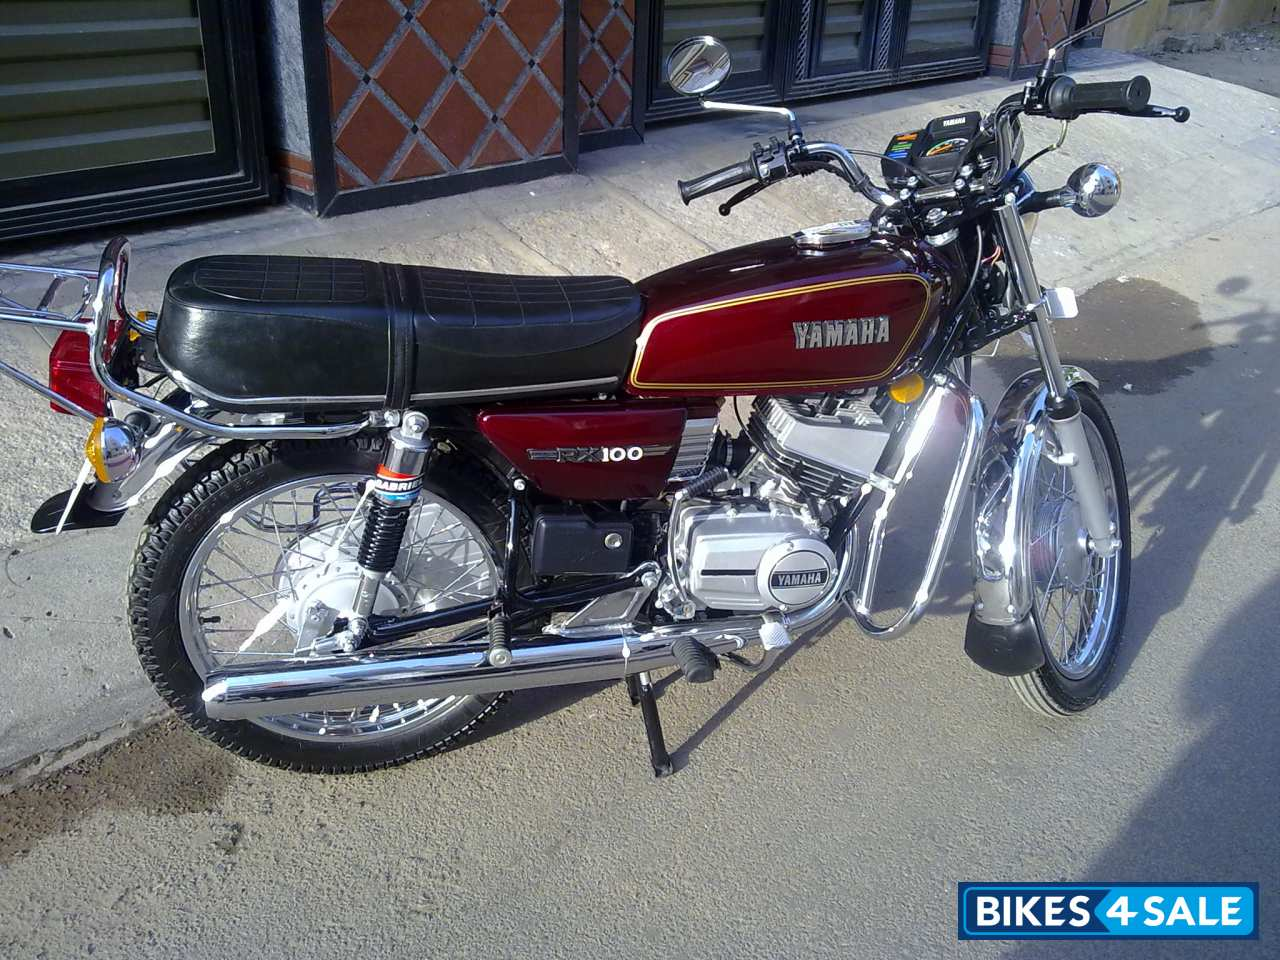 Yamaha Rx 100 Picture 1 Album Id Is 96687 Bike Located